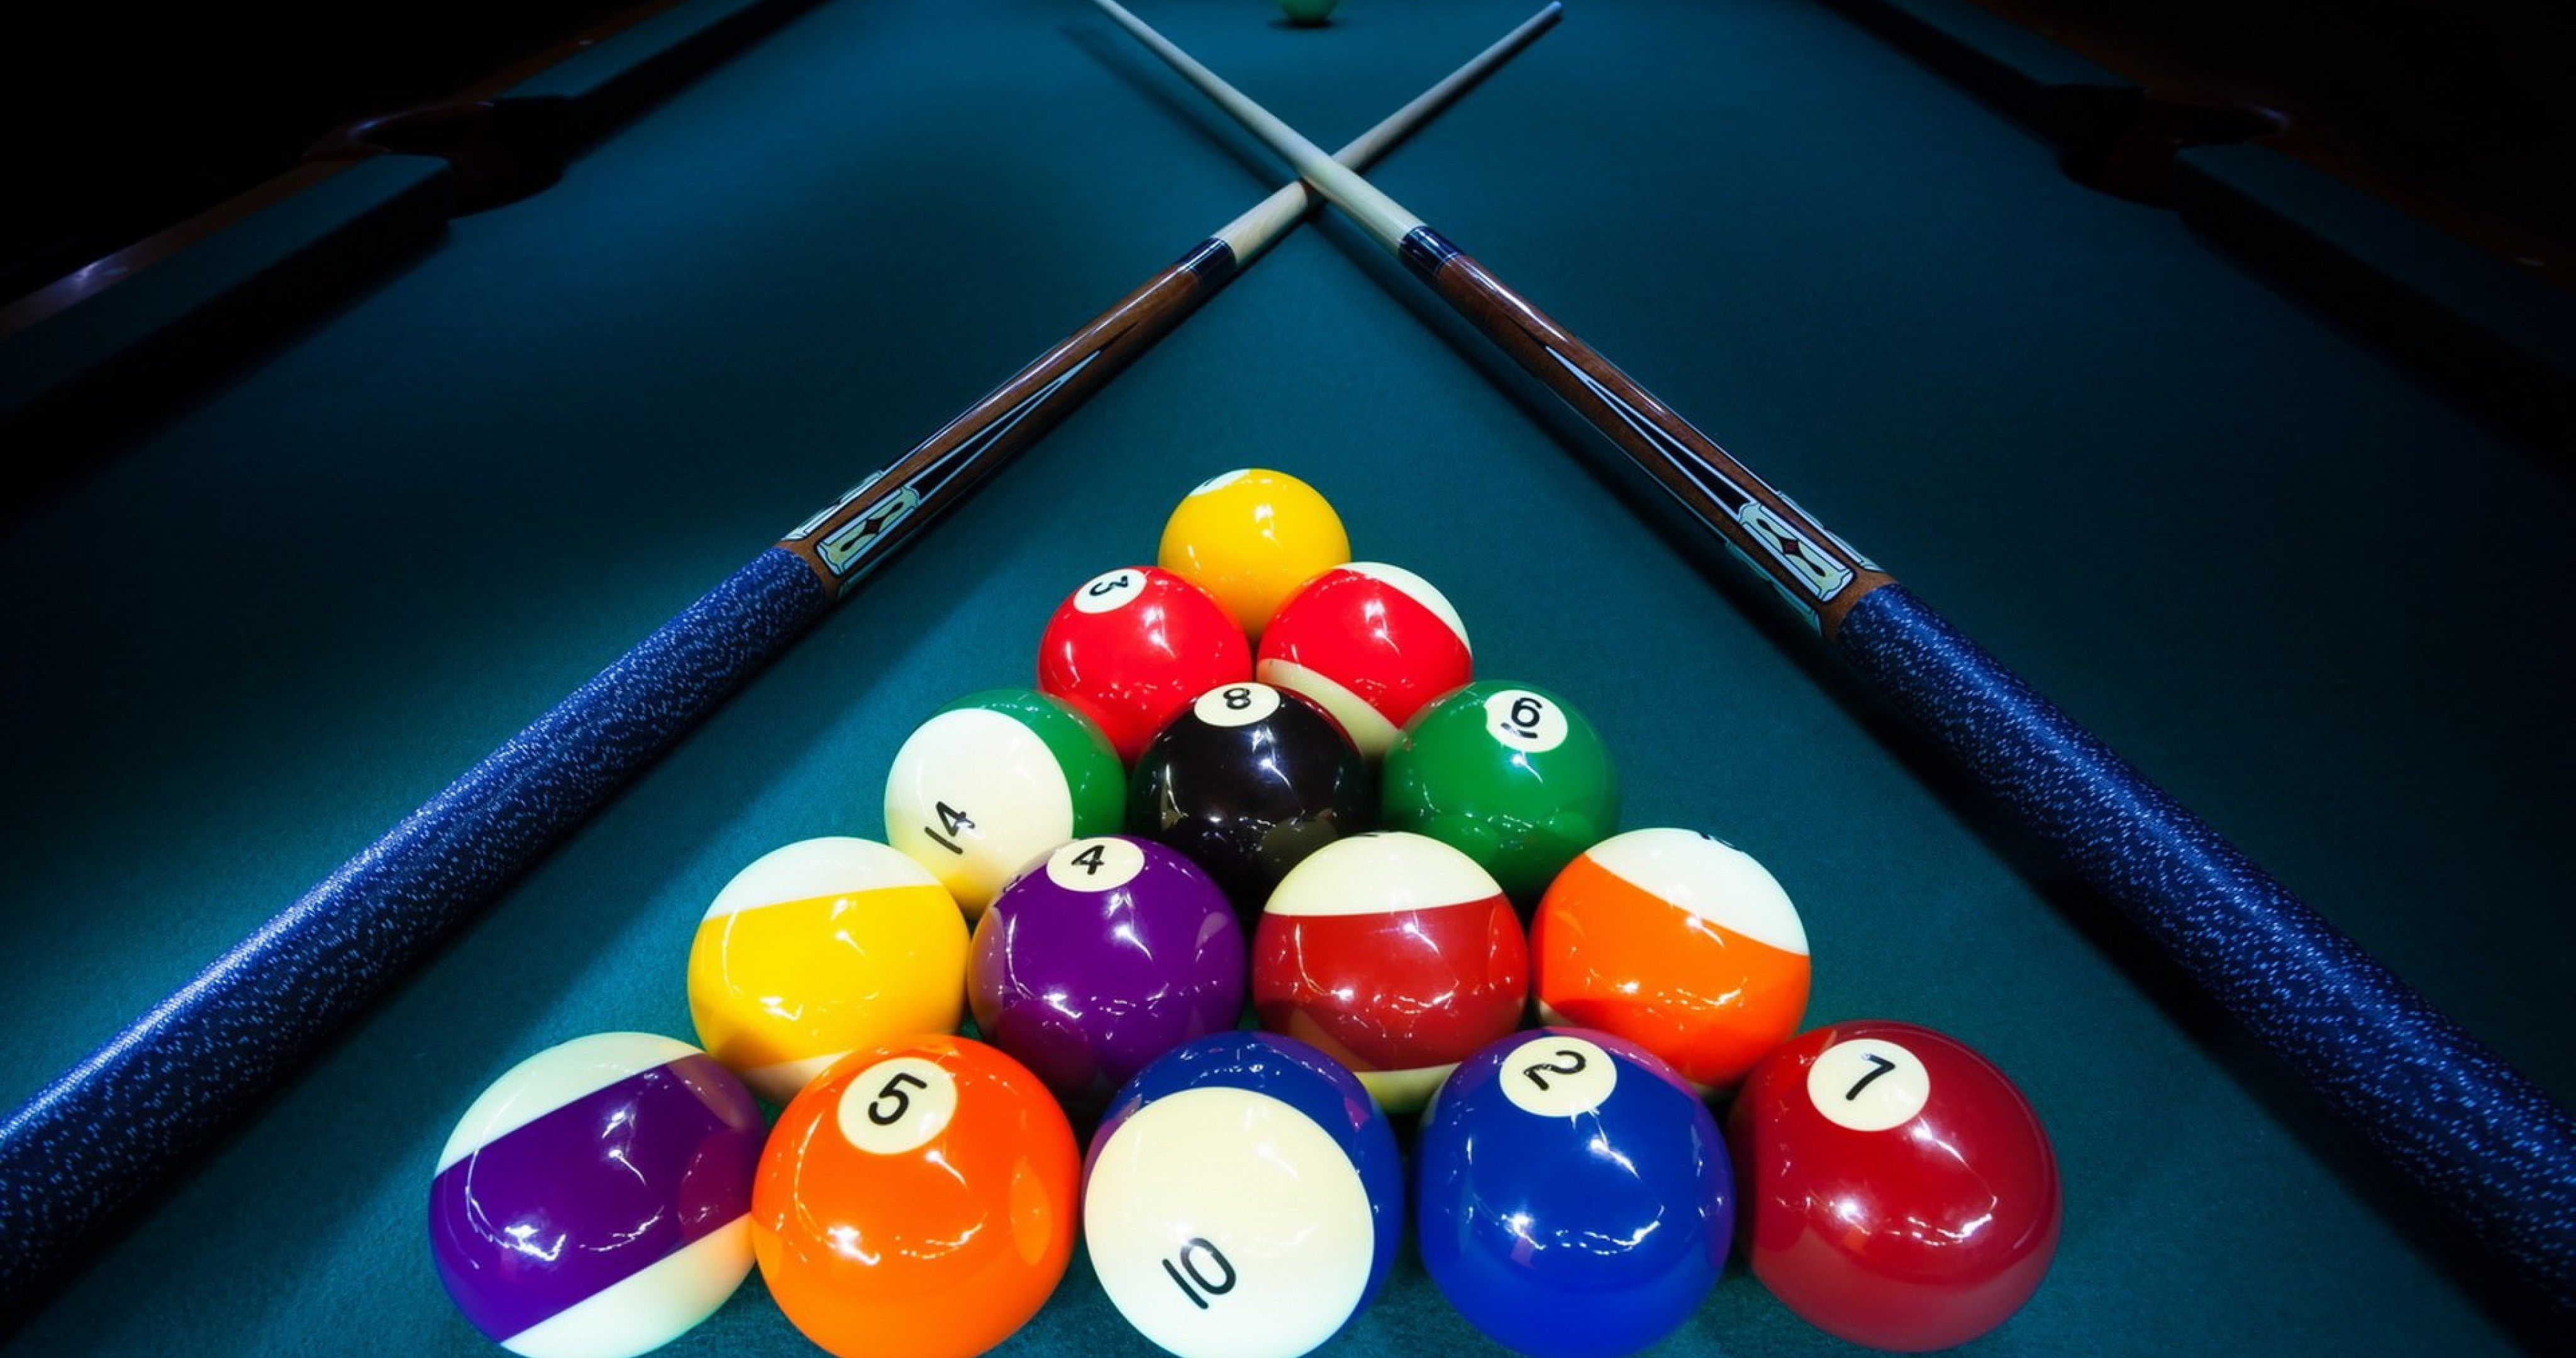 Sports Wallpaper Billiard Iphone Wallpapers Hd Resolution